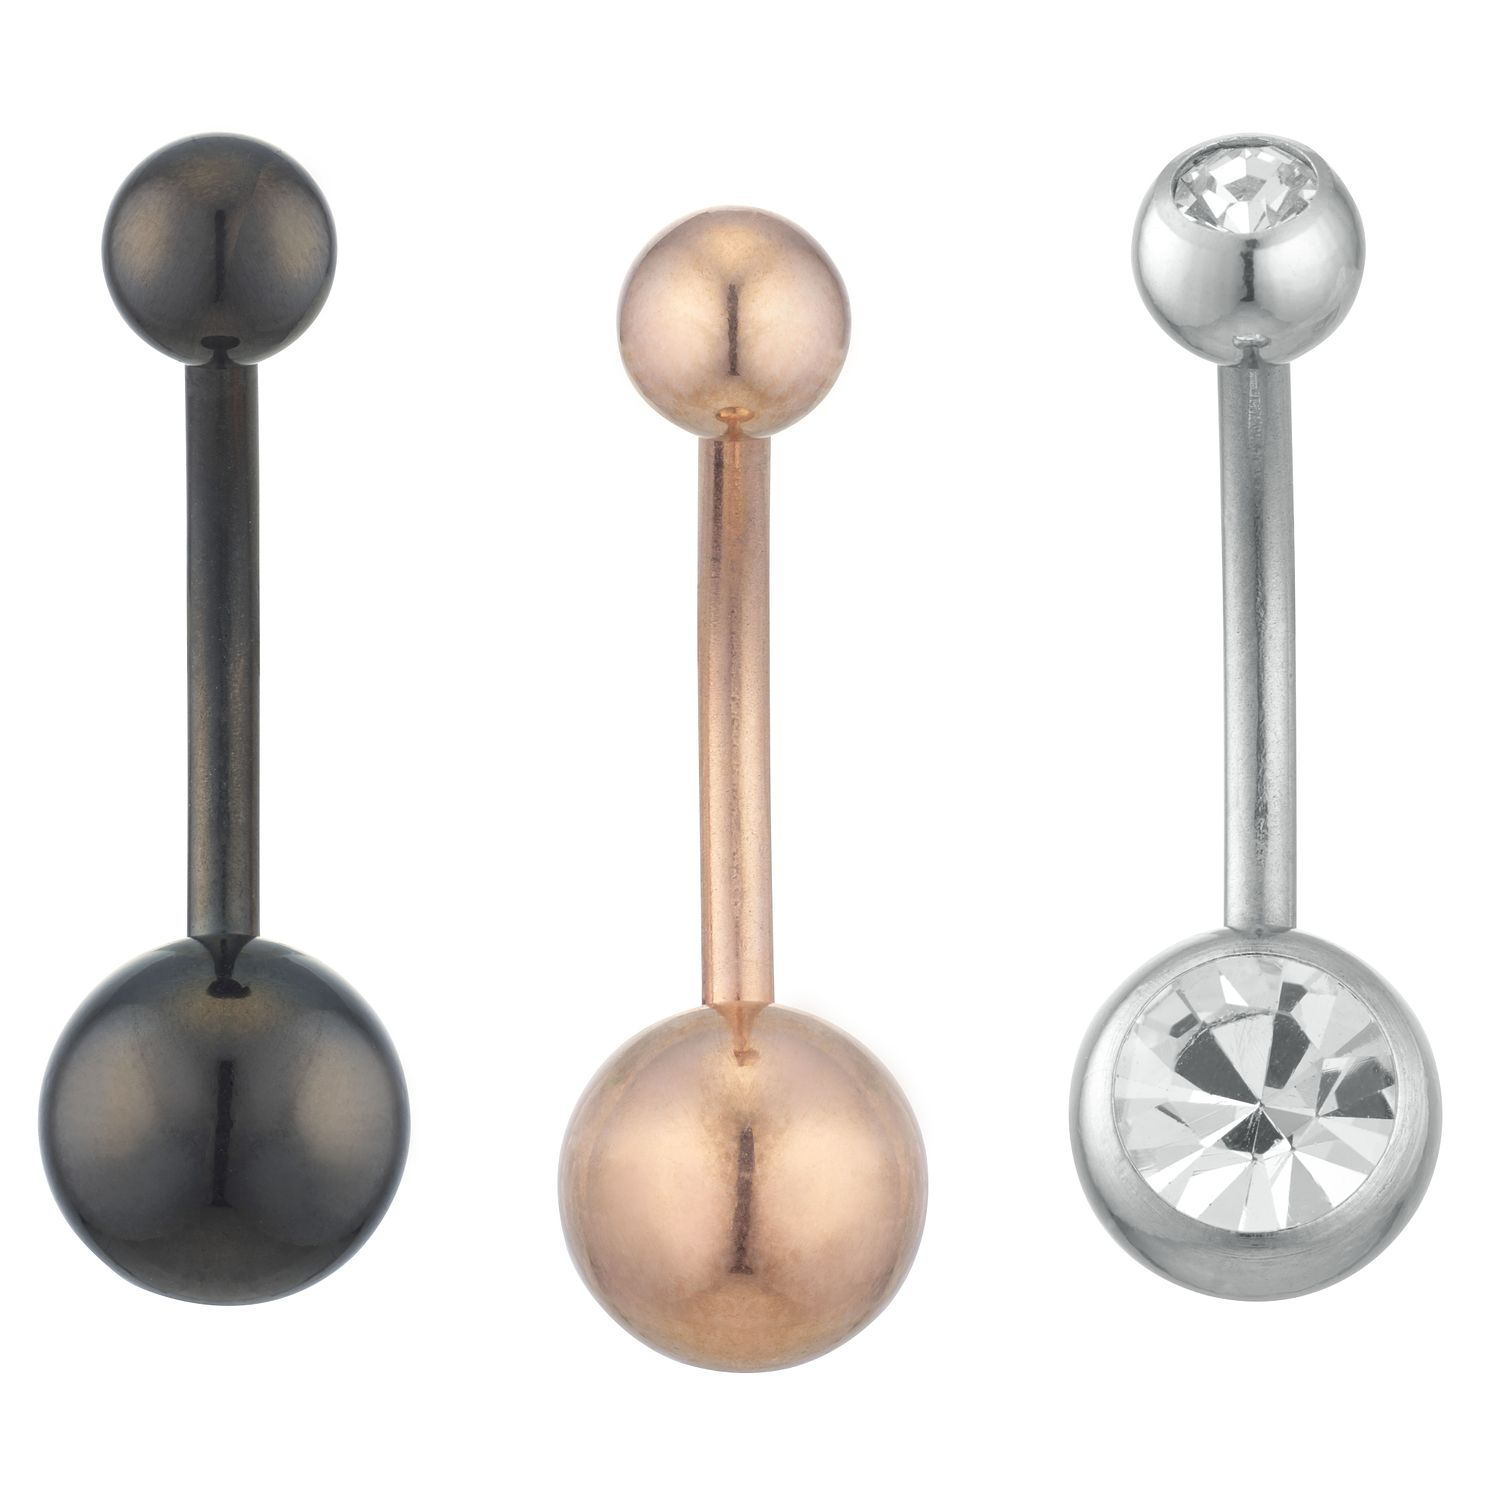 Stainless Steel Set of 3 Belly Bars - Product number 3952835